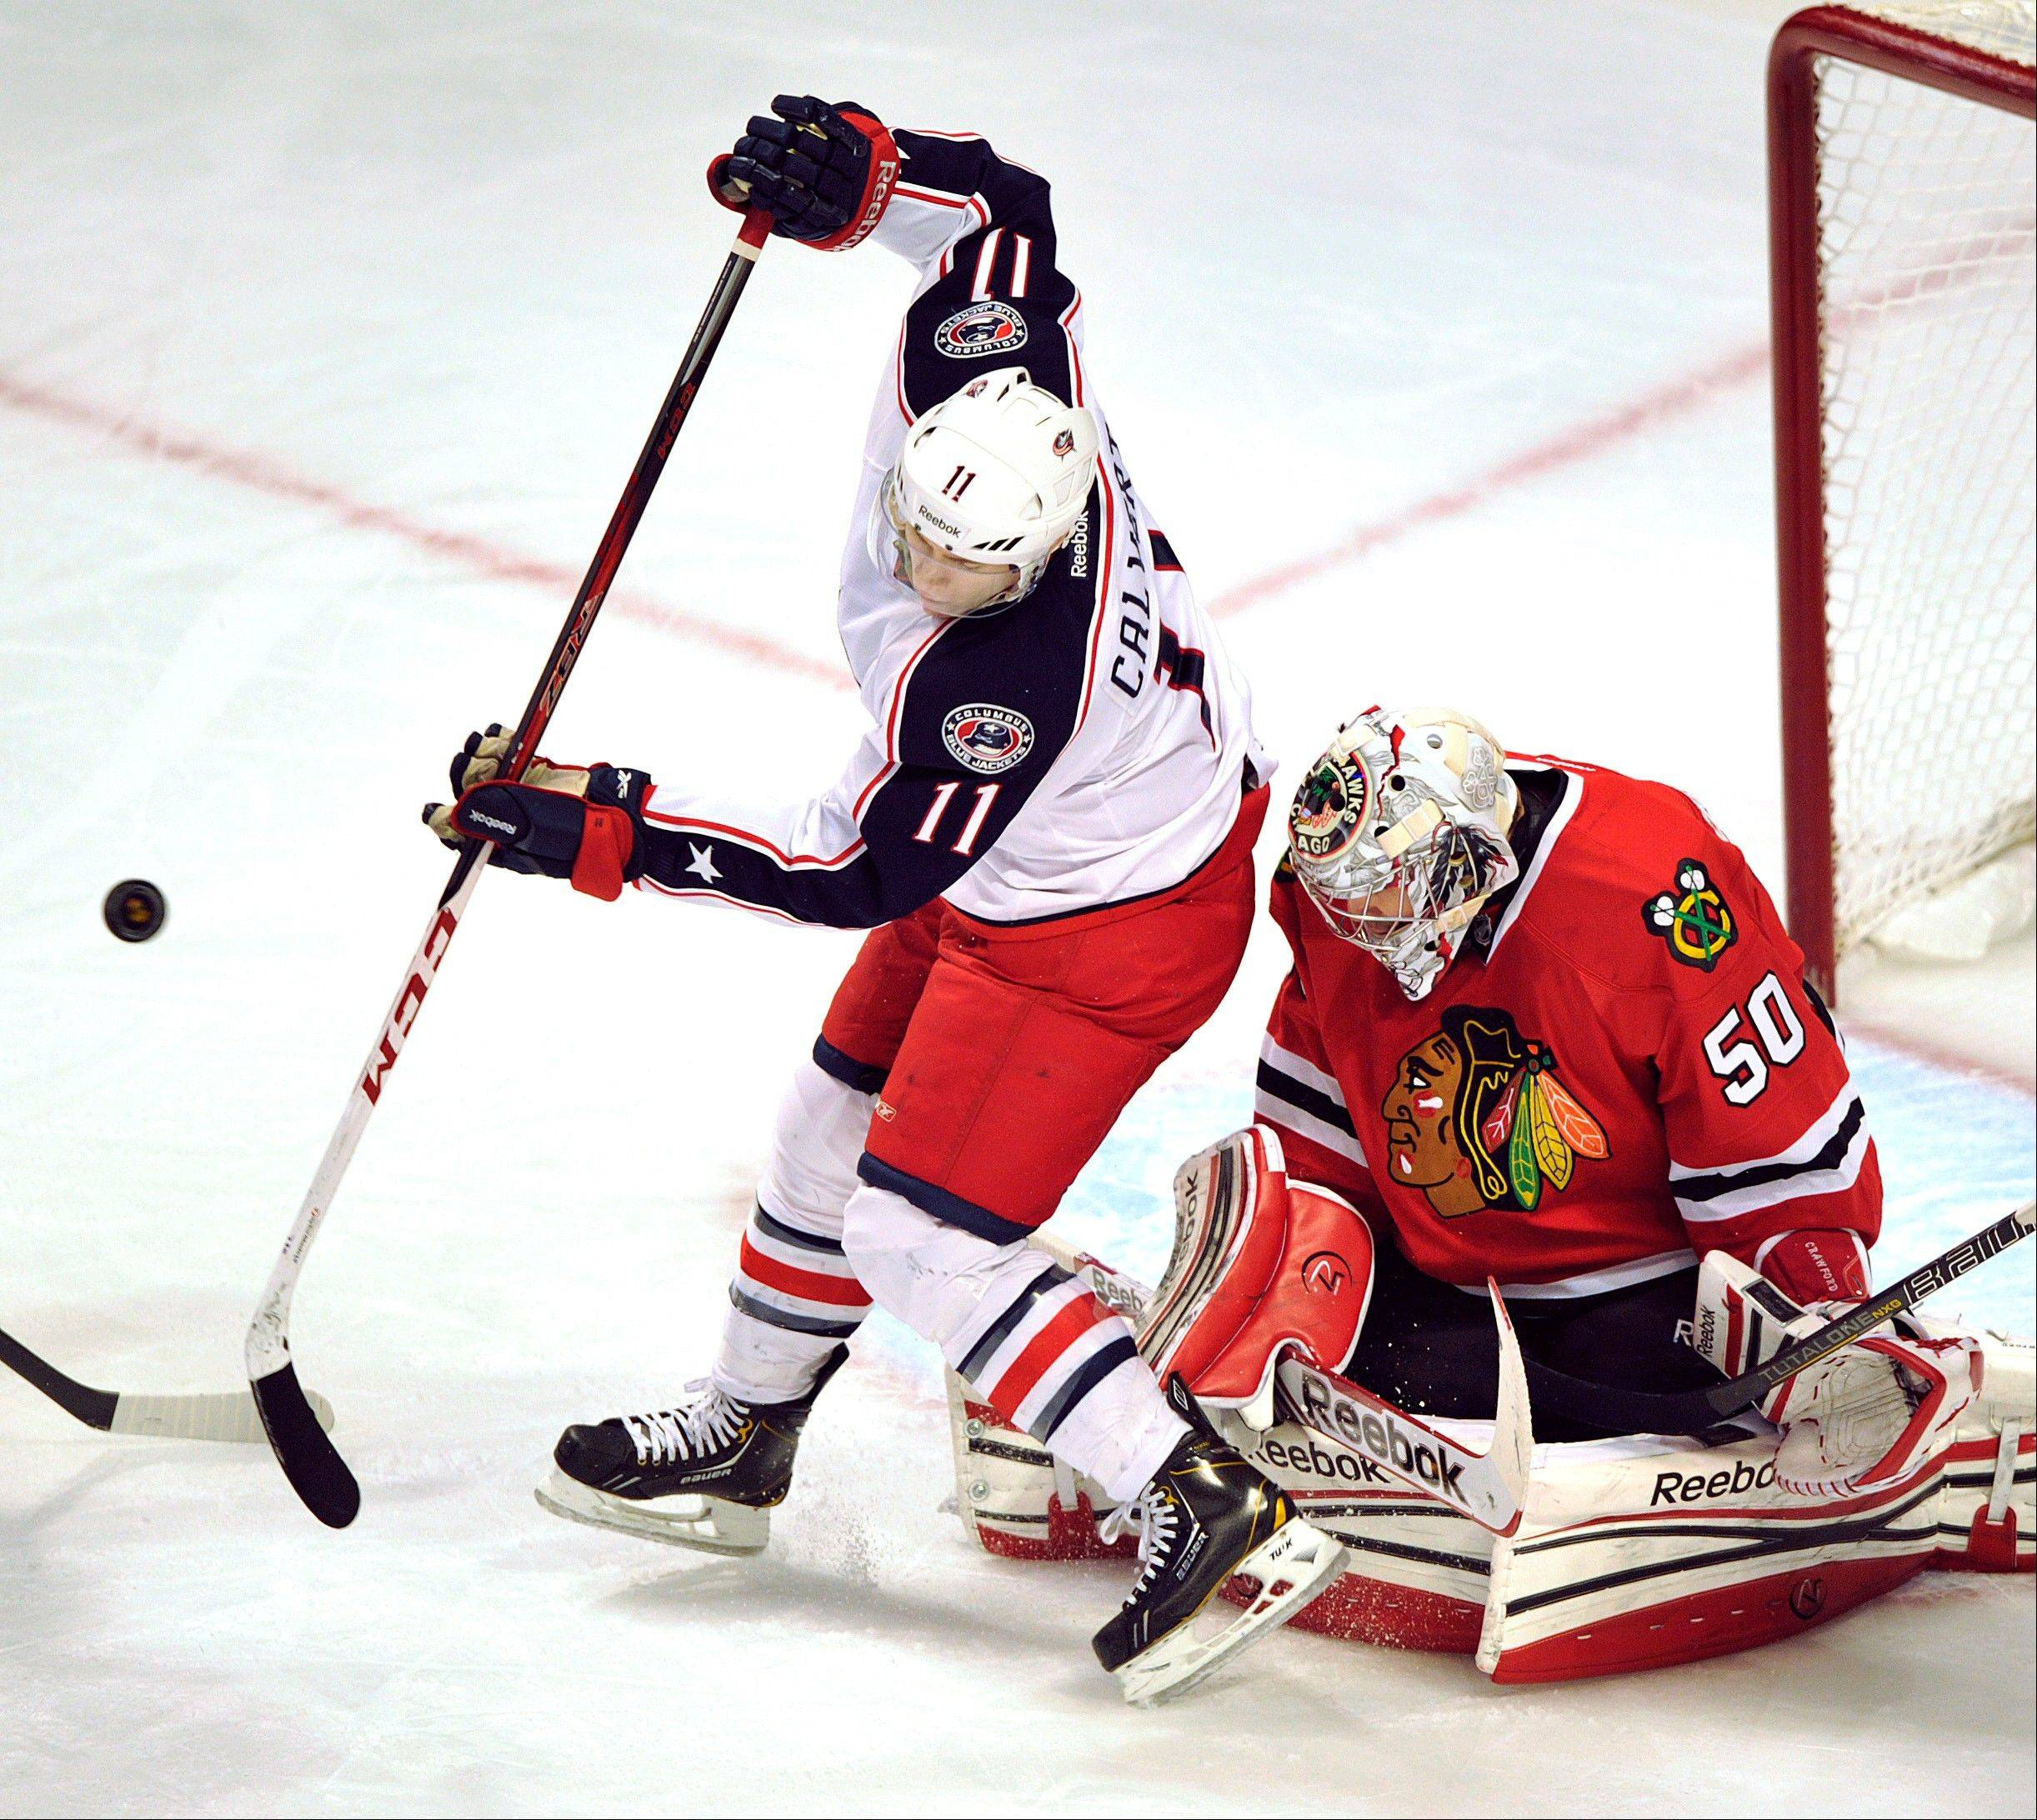 Columbus Blue Jackets' Matt Calvert (11) tries to tip the puck past Chicago Blackhawks goalie Corey Crawford (50) during the first period of an NHL hockey game Sunday, Feb. 24, 2013, in Chicago.